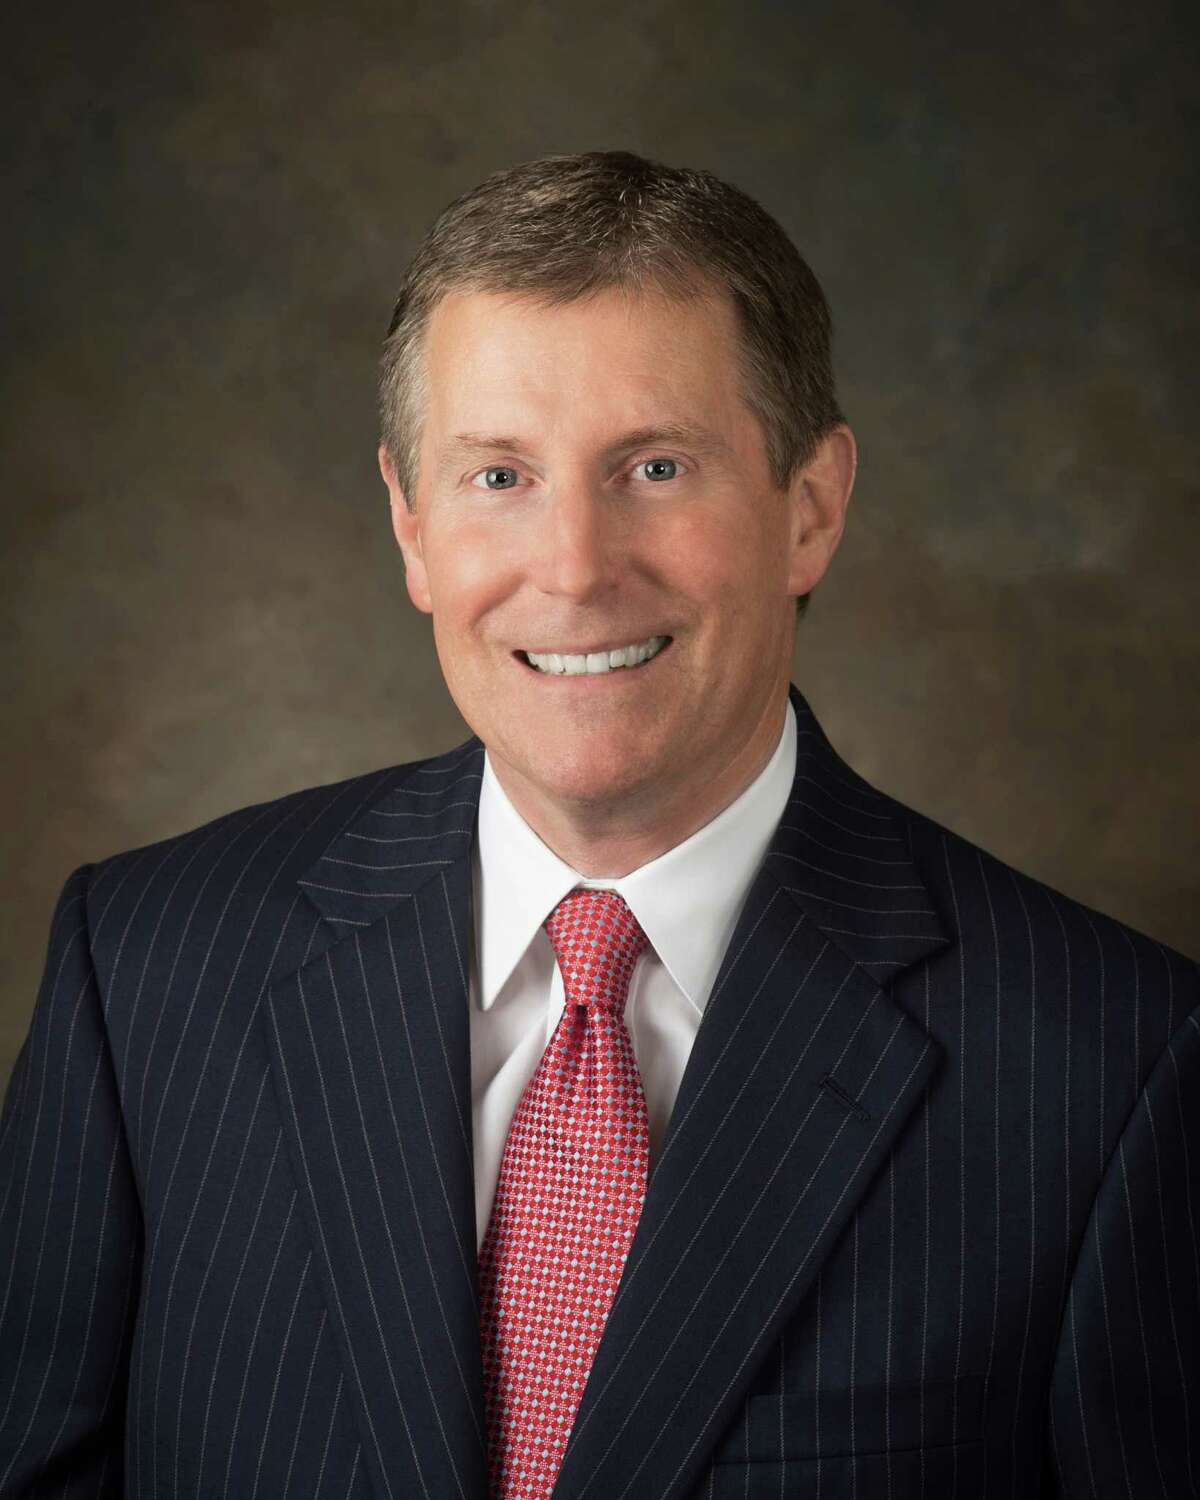 Bob Berry has joined Avison Young as a principal in the Houston office. Berry will specialize in industrial end-user representation with an emphasis on working with major corporations on cost-reduction strategies, build-to-suit projects and disposition of surplus properties. He most recently served as executive vice president for Jones Lang LaSalle in Houston, specializing in industrial tenant representation.